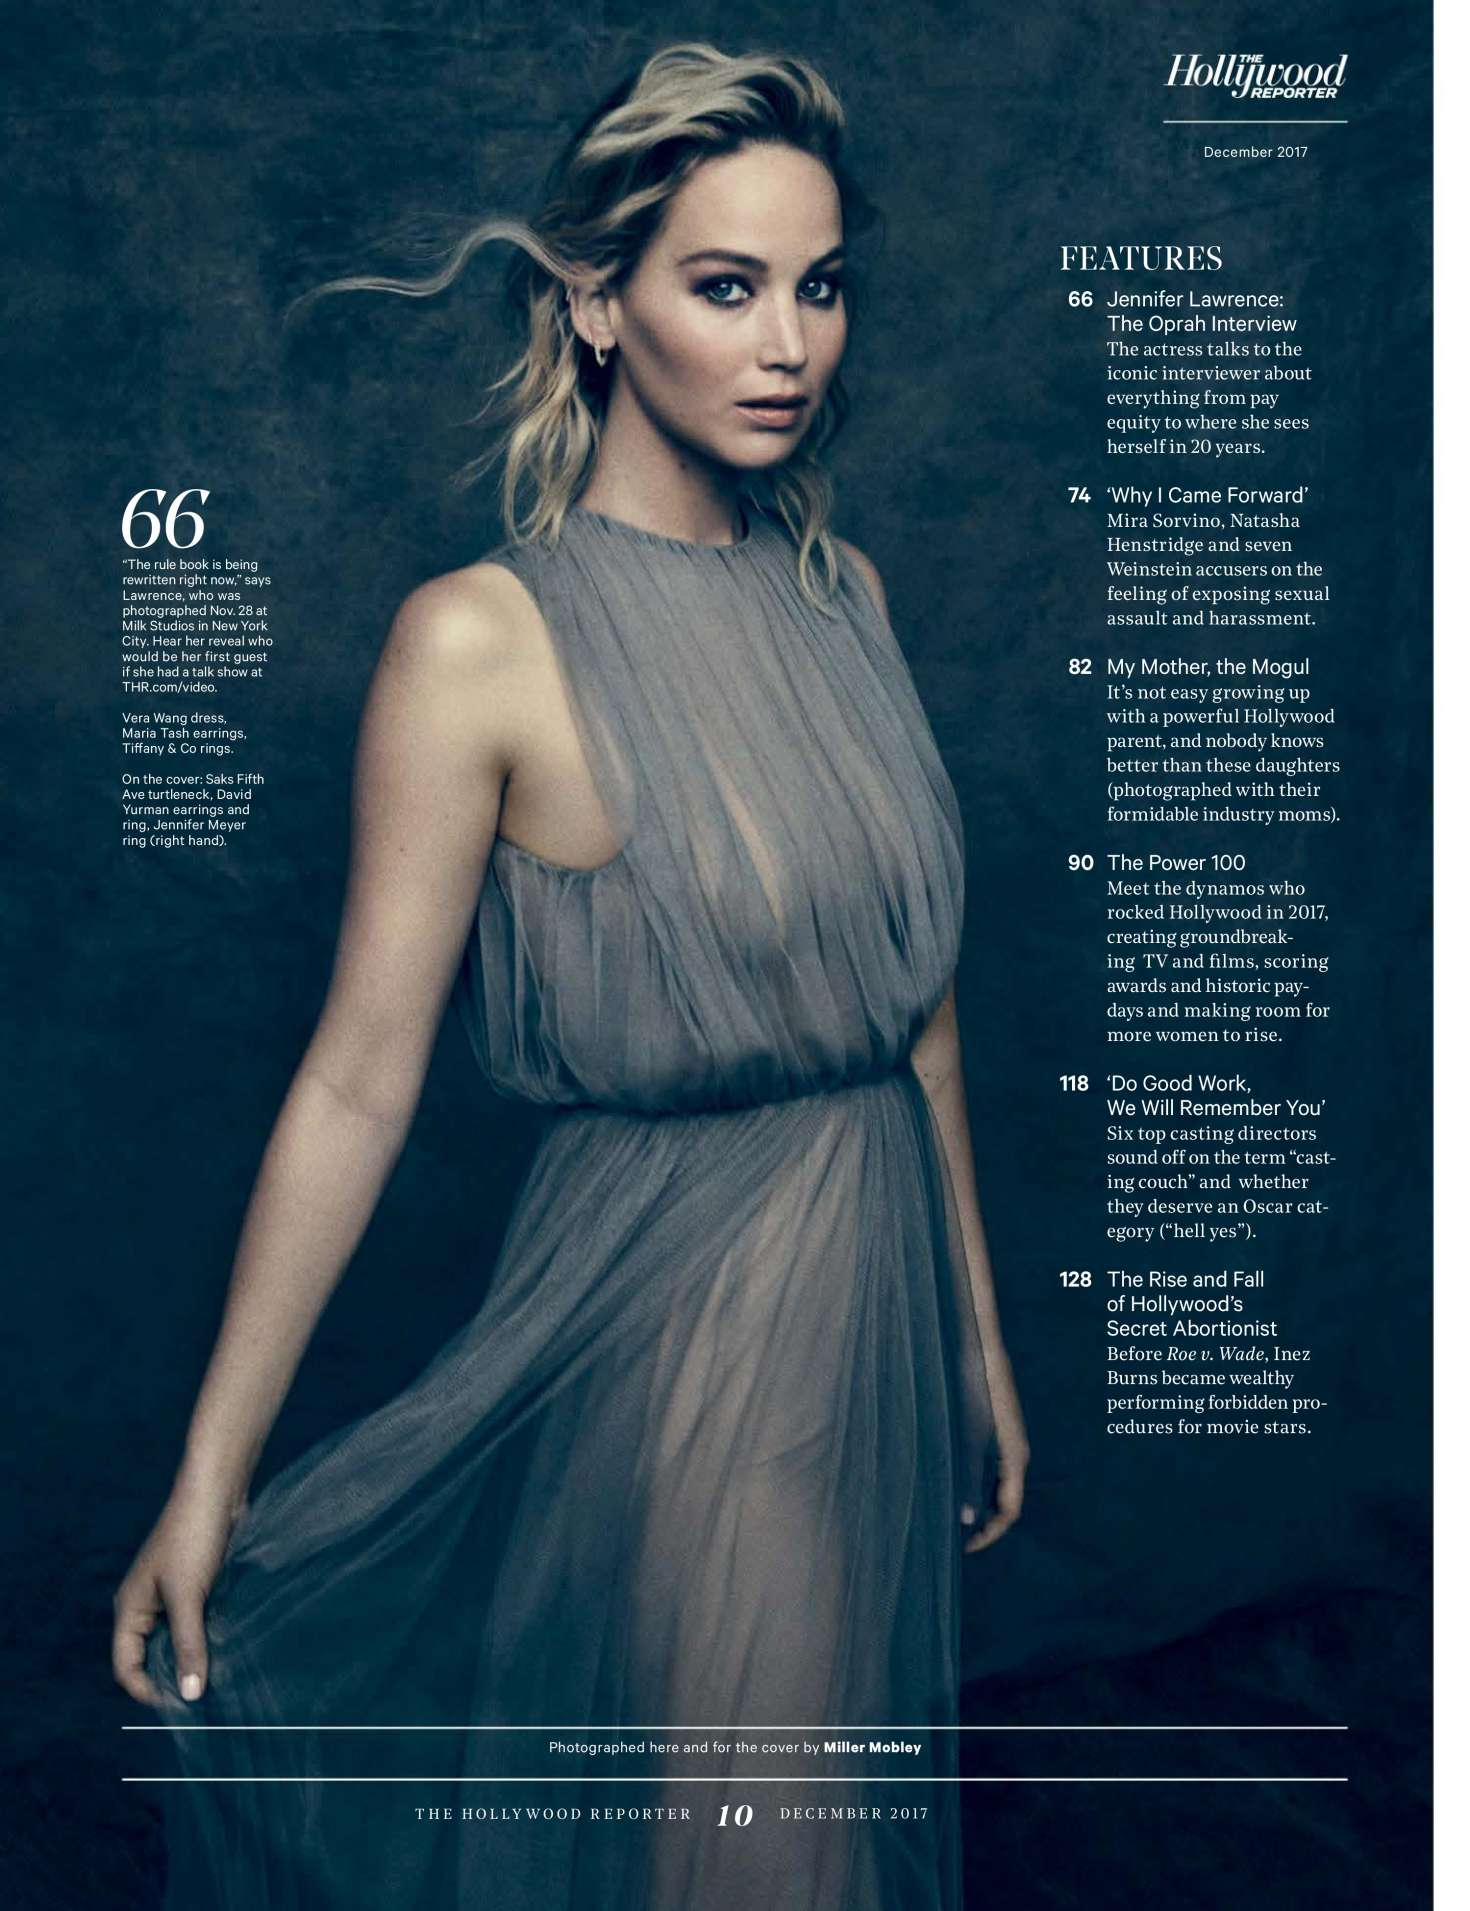 Jennifer Lawrence - The Hollywood Reporter (December 2017)